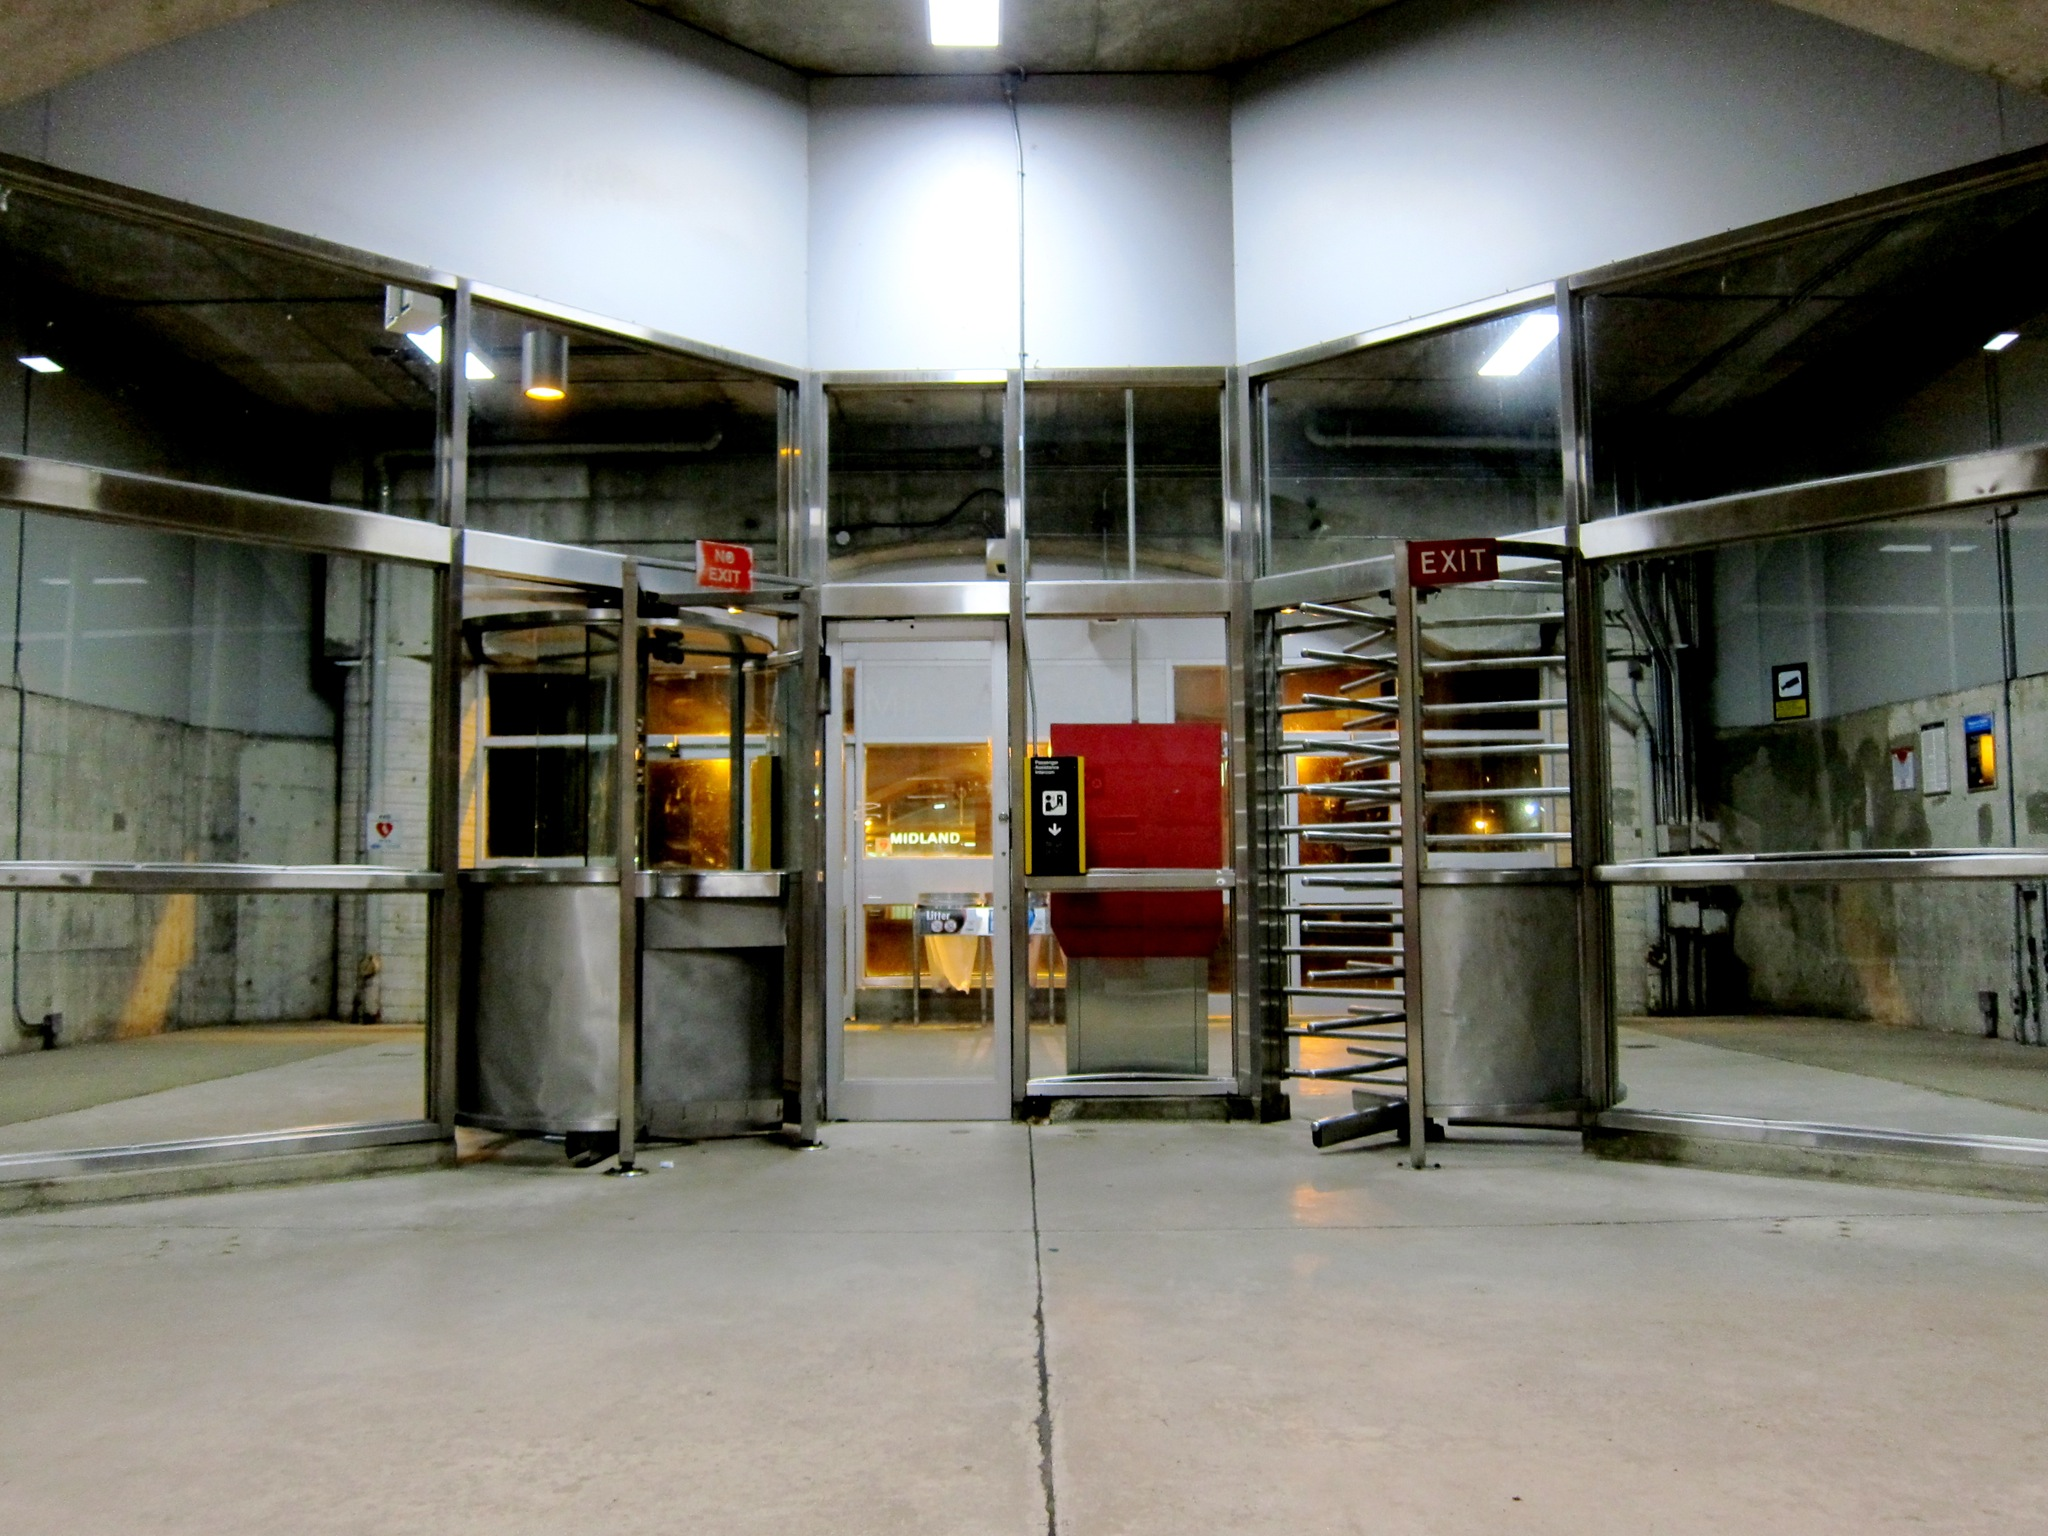 Photo: View of the automated entrance/exit on the eastern side.  This entrance feels like you're standing in a garage.  When the station opened in April 1985, originally there was a closed circuit TV camera at this unstaffed entrance which would allow passengers to display their transfers or Metropasses to the Collector on the west side, who could push a button to let them through the gate.